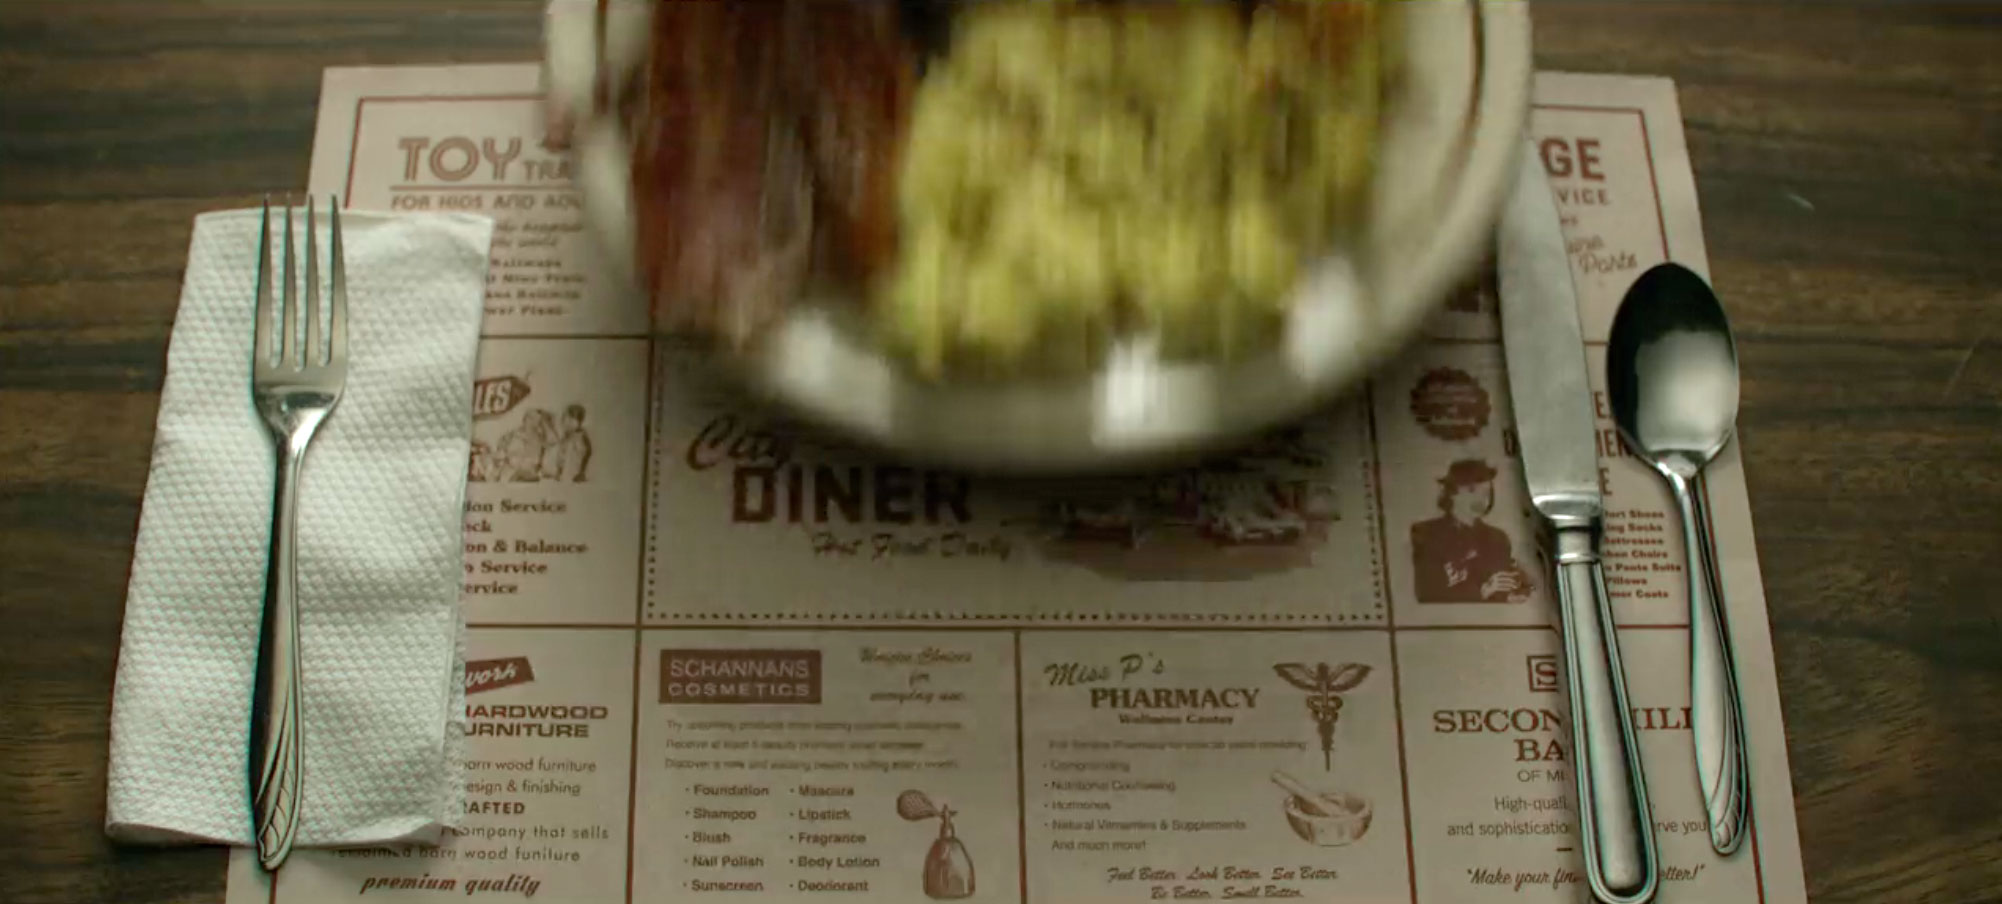 Mindhunter_Placemat.jpg